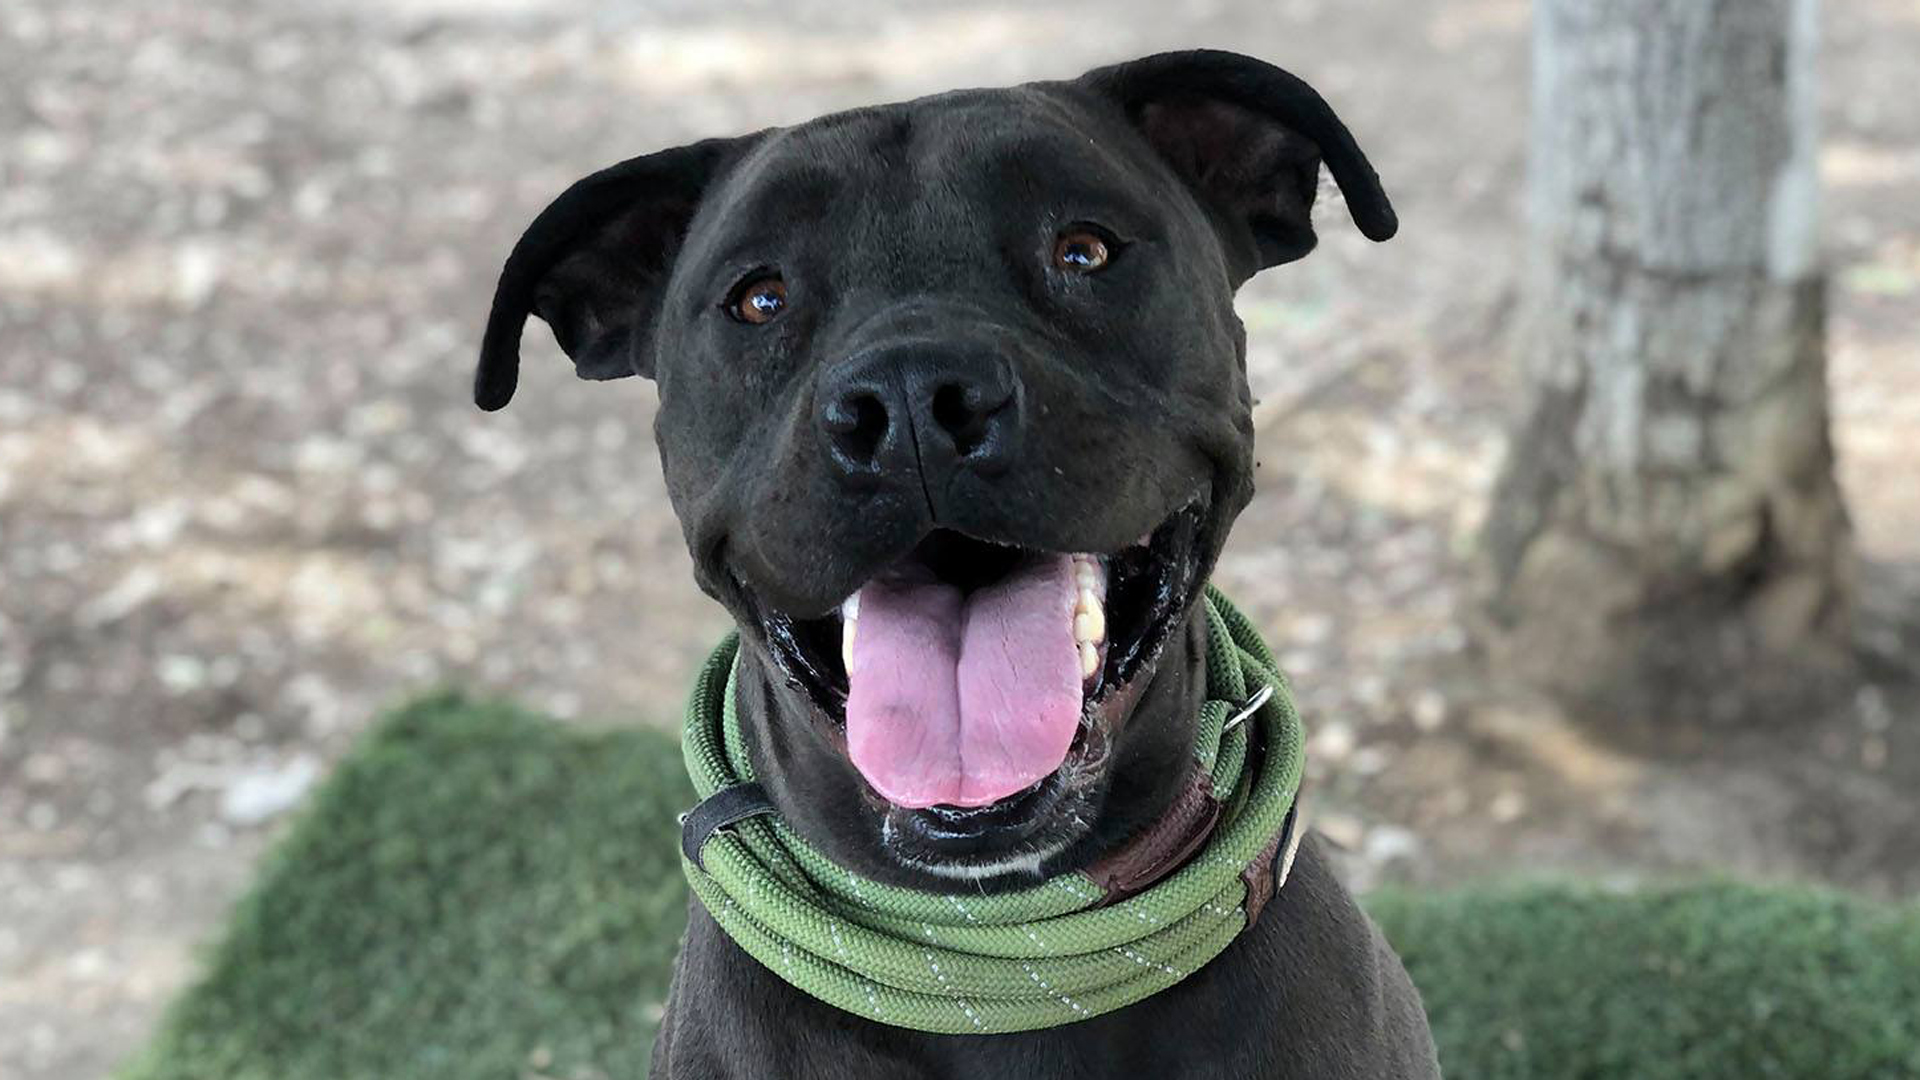 3-year-old Luna at the North Central Center on Nov. 22, 2019. (Credit: LA Animal Services)